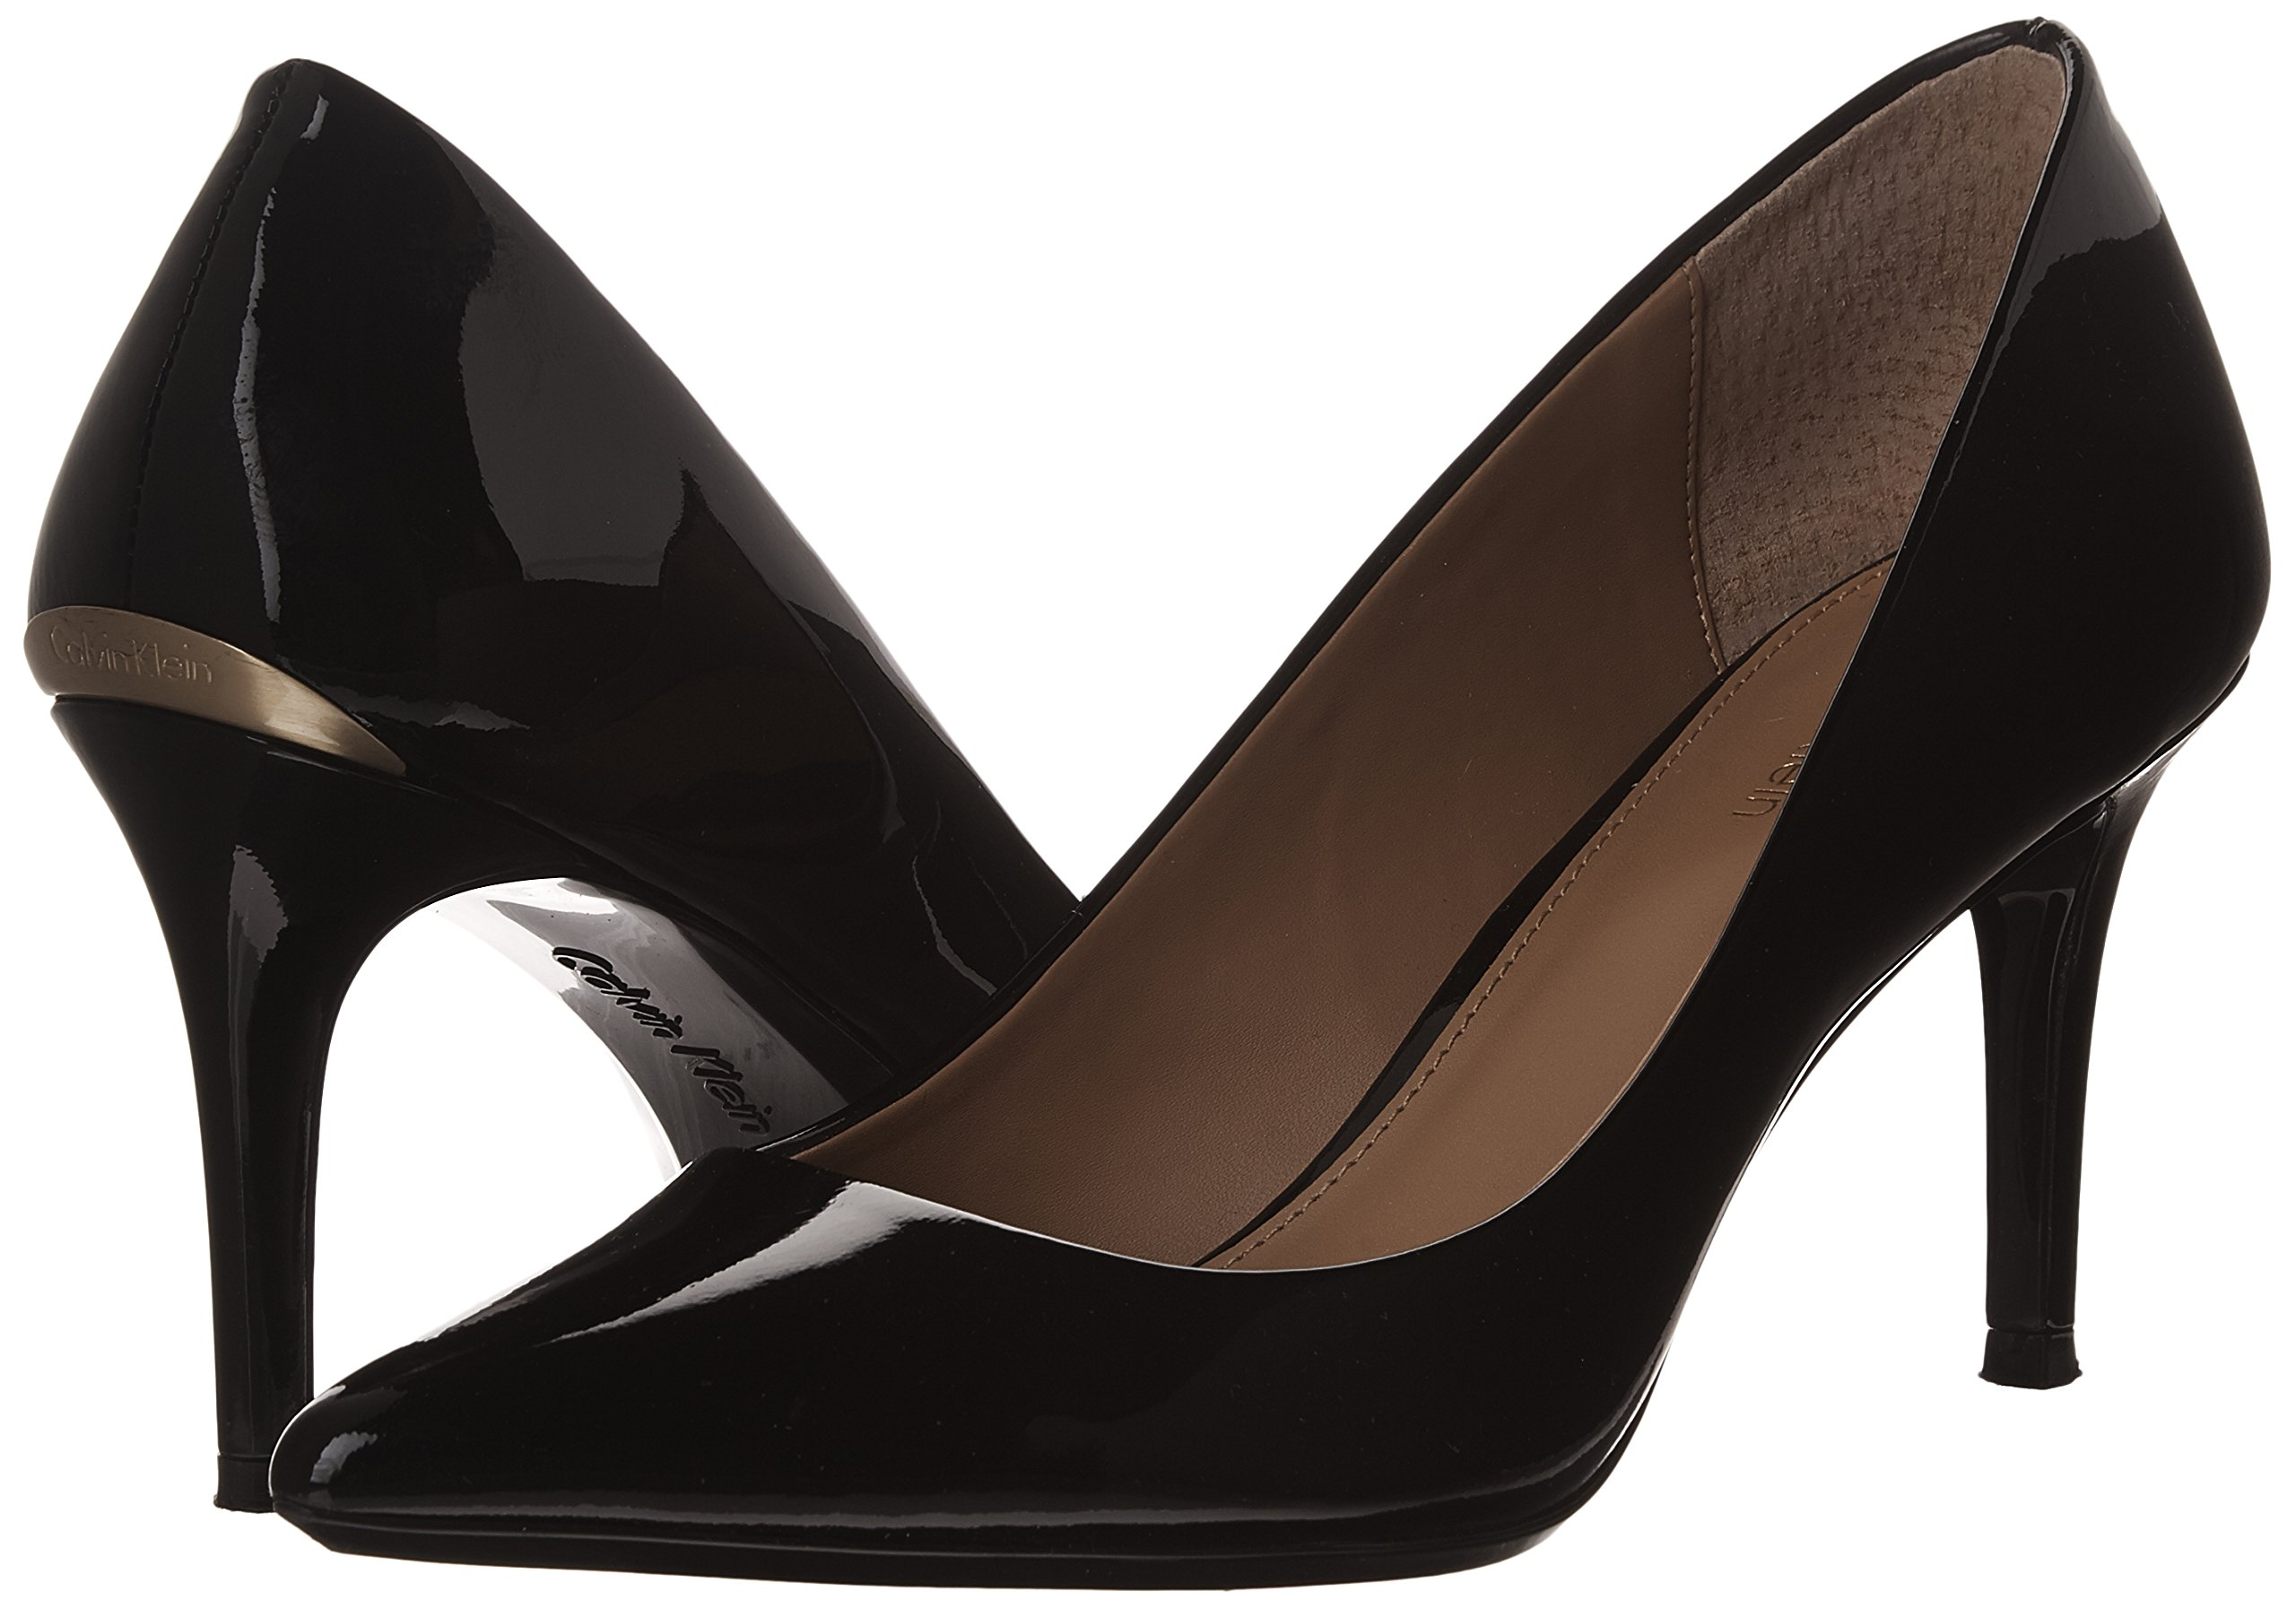 Calvin Klein Women's Gayle  Dress Pump,Black Patent, 7.5 M by Calvin Klein (Image #6)